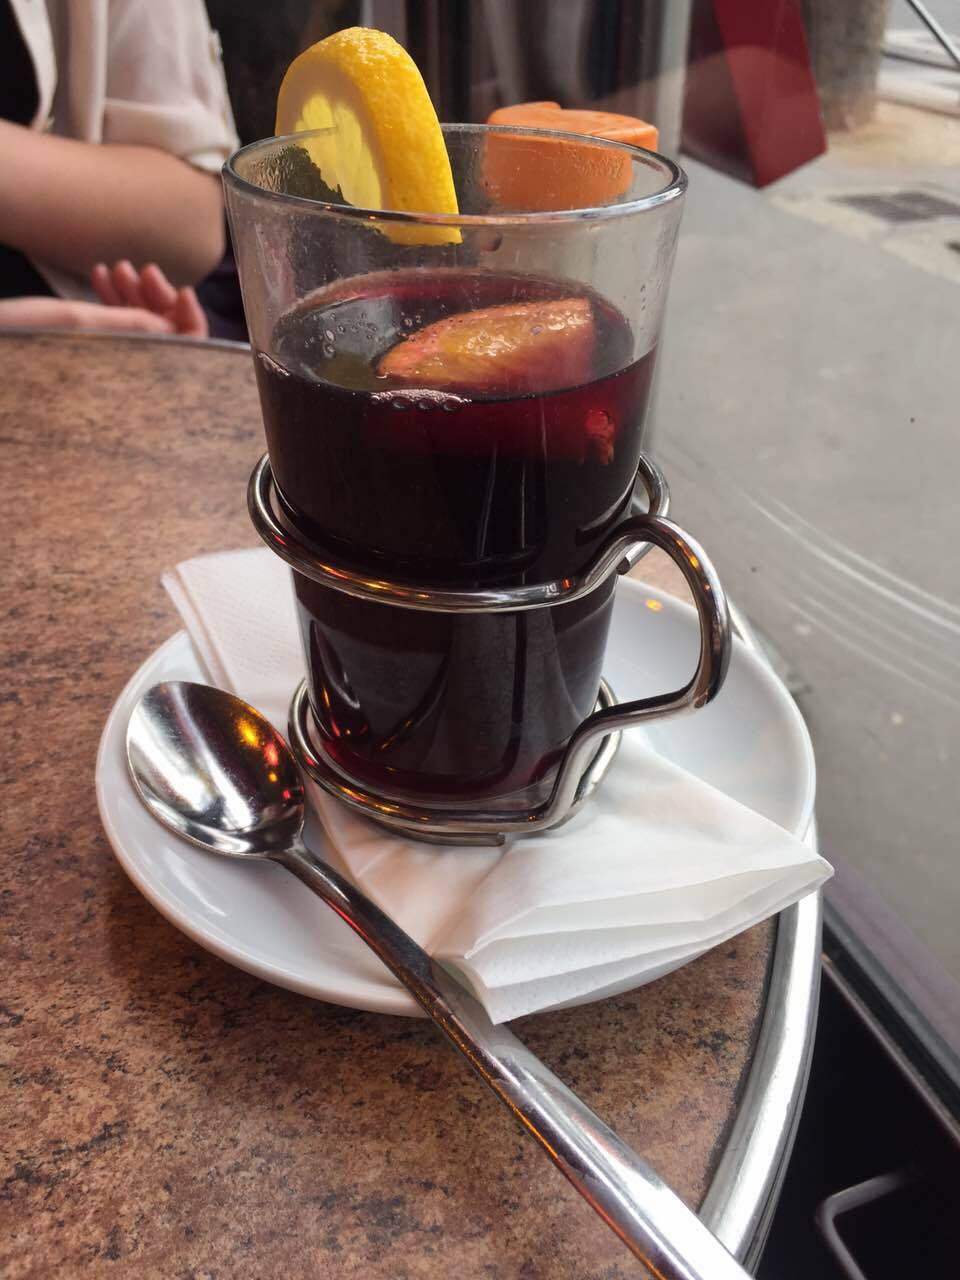 Mulled wine, a warm, neccesary treat during winter